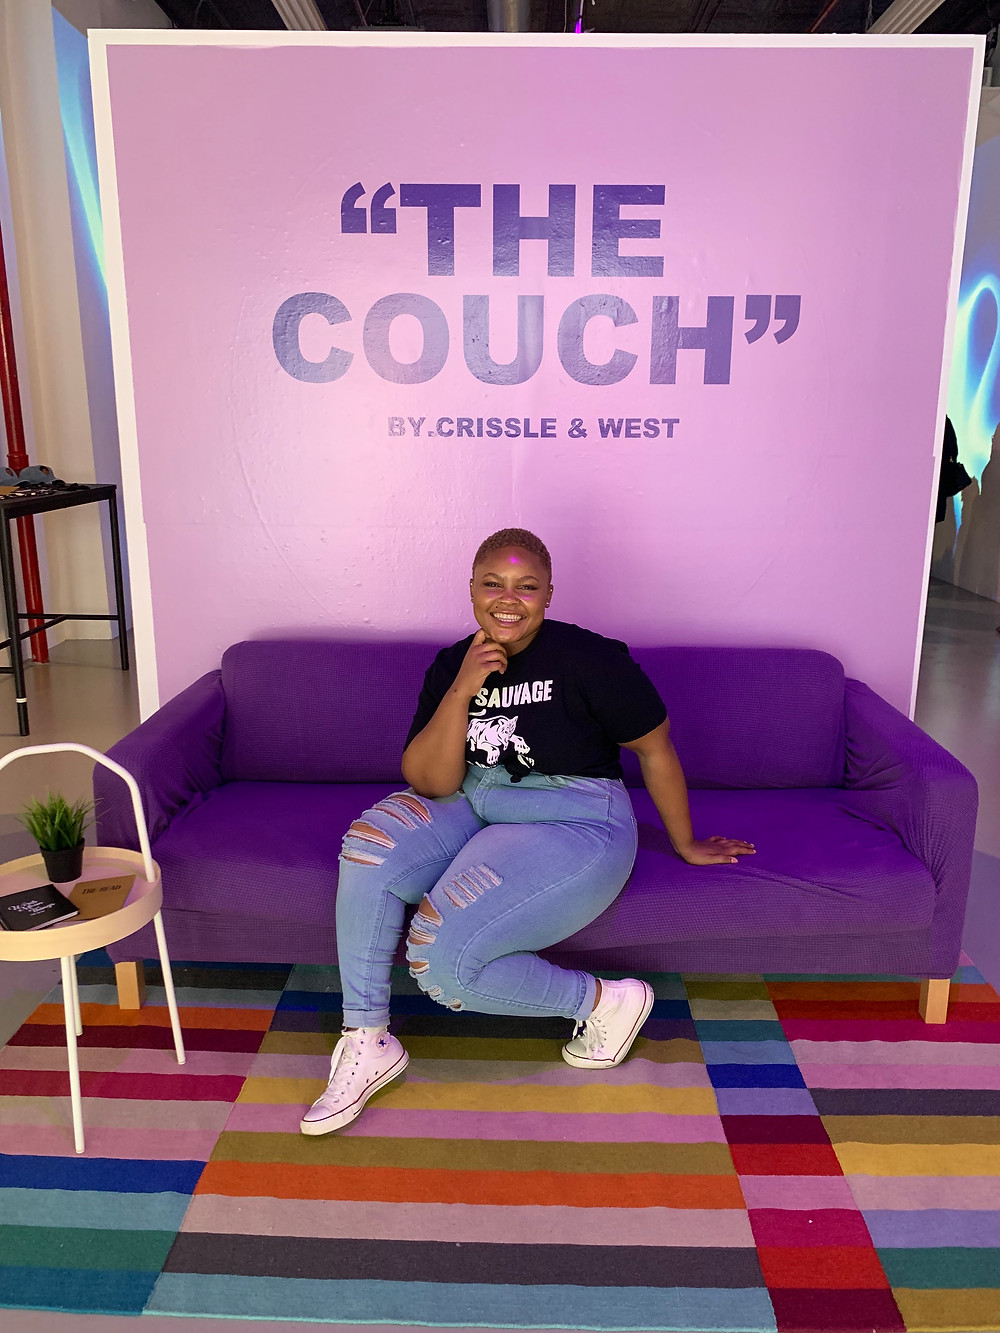 The Couch by Crissle & West